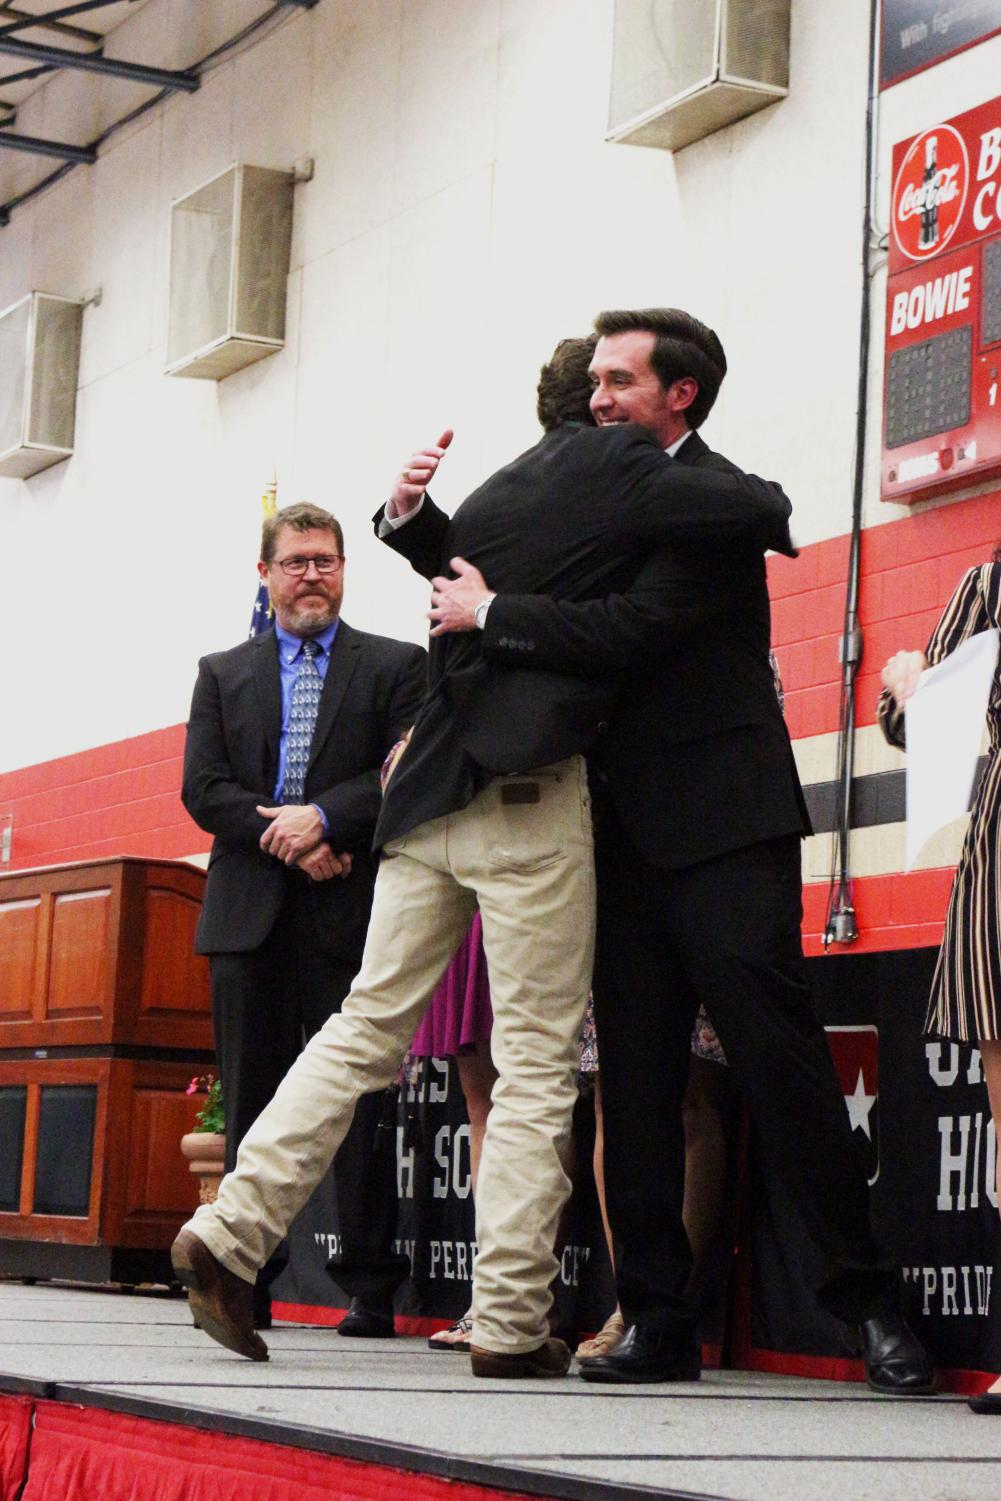 FINAL GOODBYES: Adam Werchen embraces social studies teacher Alejandro Garcia as he accepts an award at senior honor night. Principal Mark Robinson observes the excitement and positivity of the event to the left.